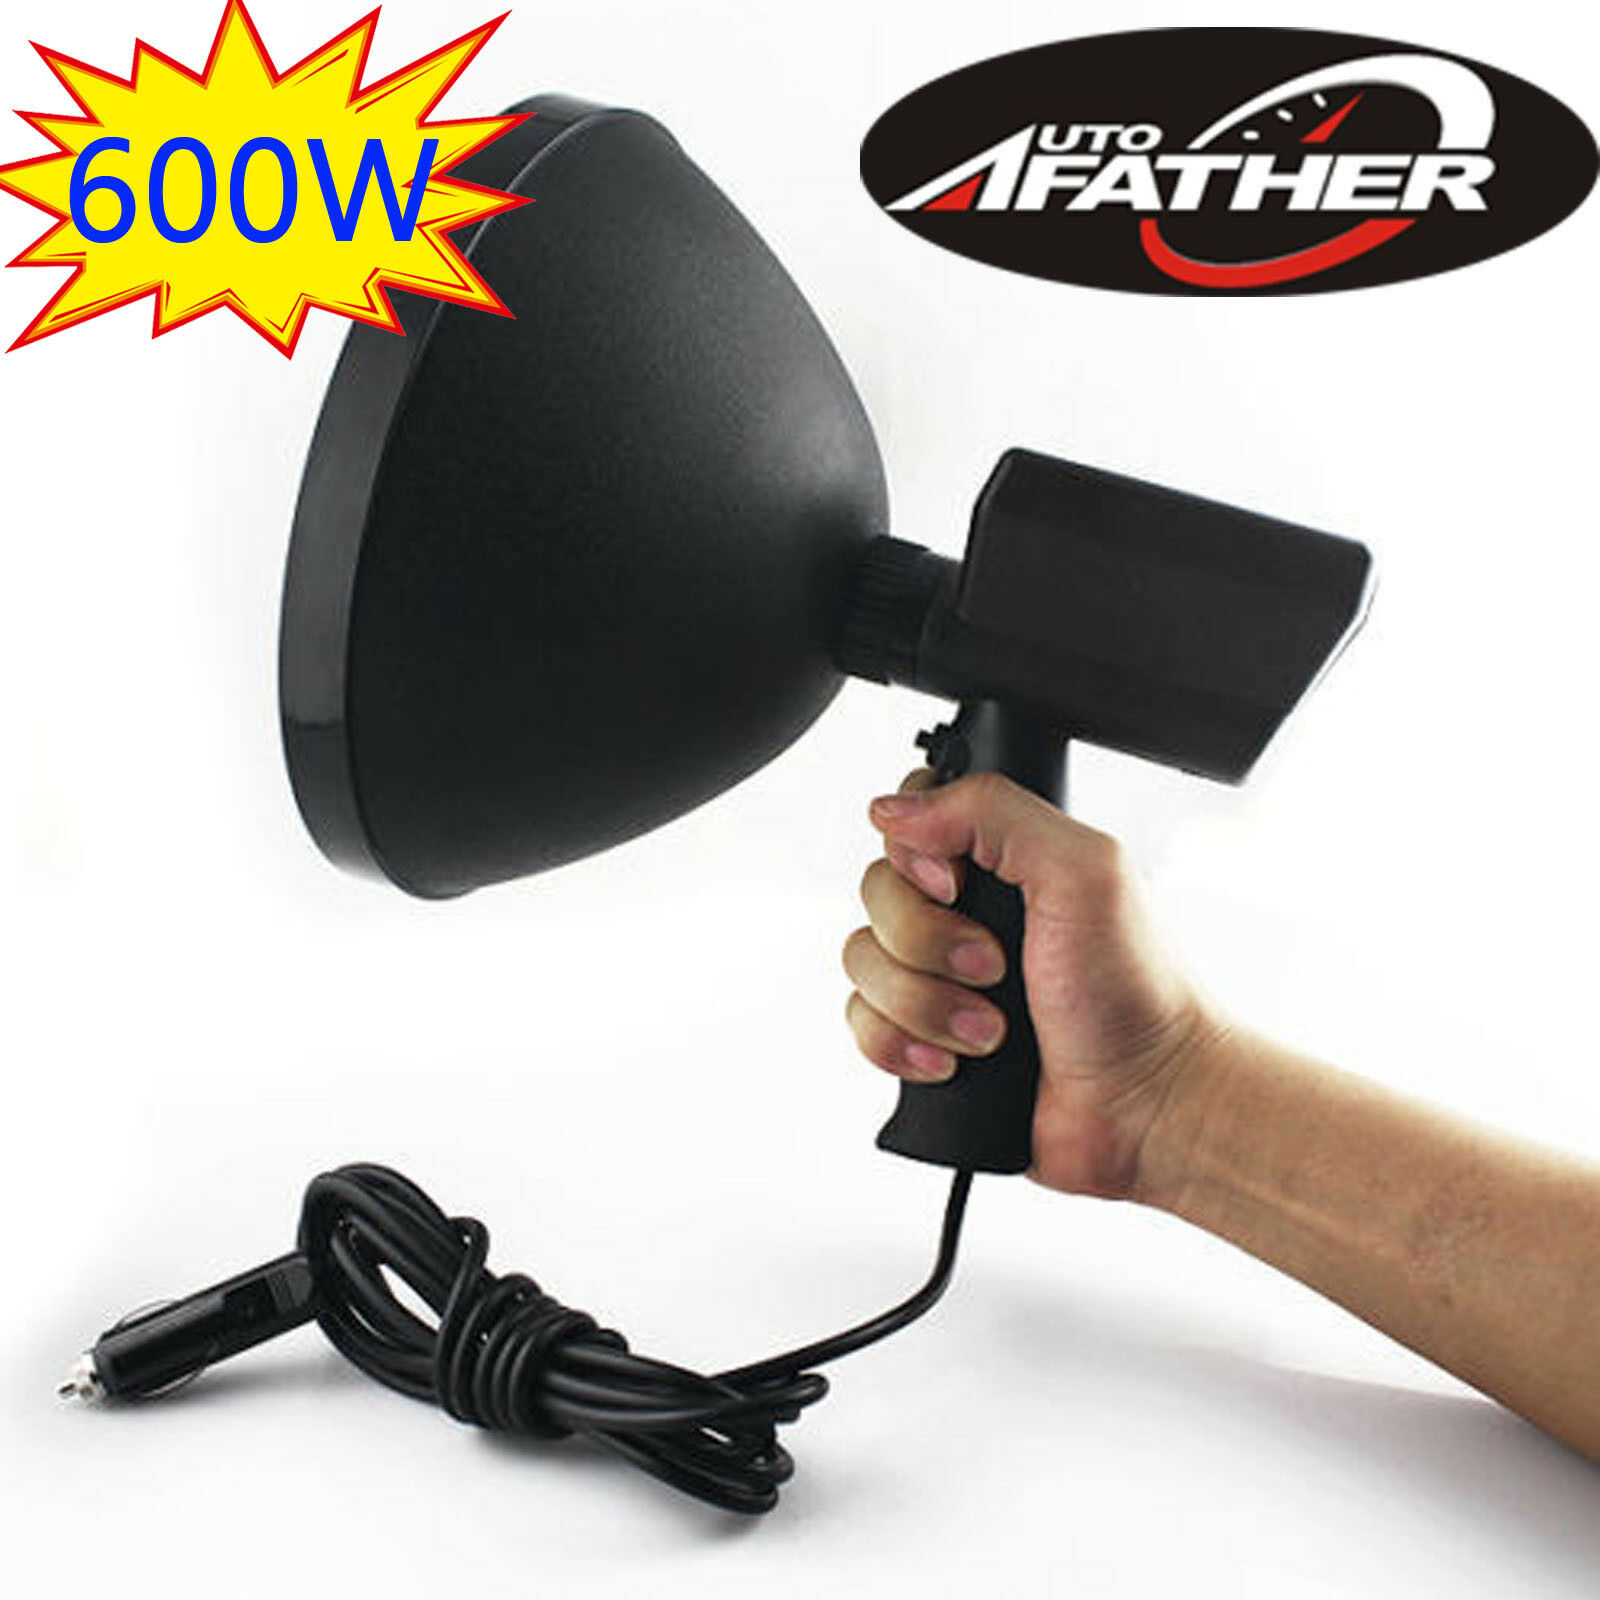 HandHeld Spotlight 12V 600W 9 Inch 240mm Driving Lamps Hunting SearchLight 6000K